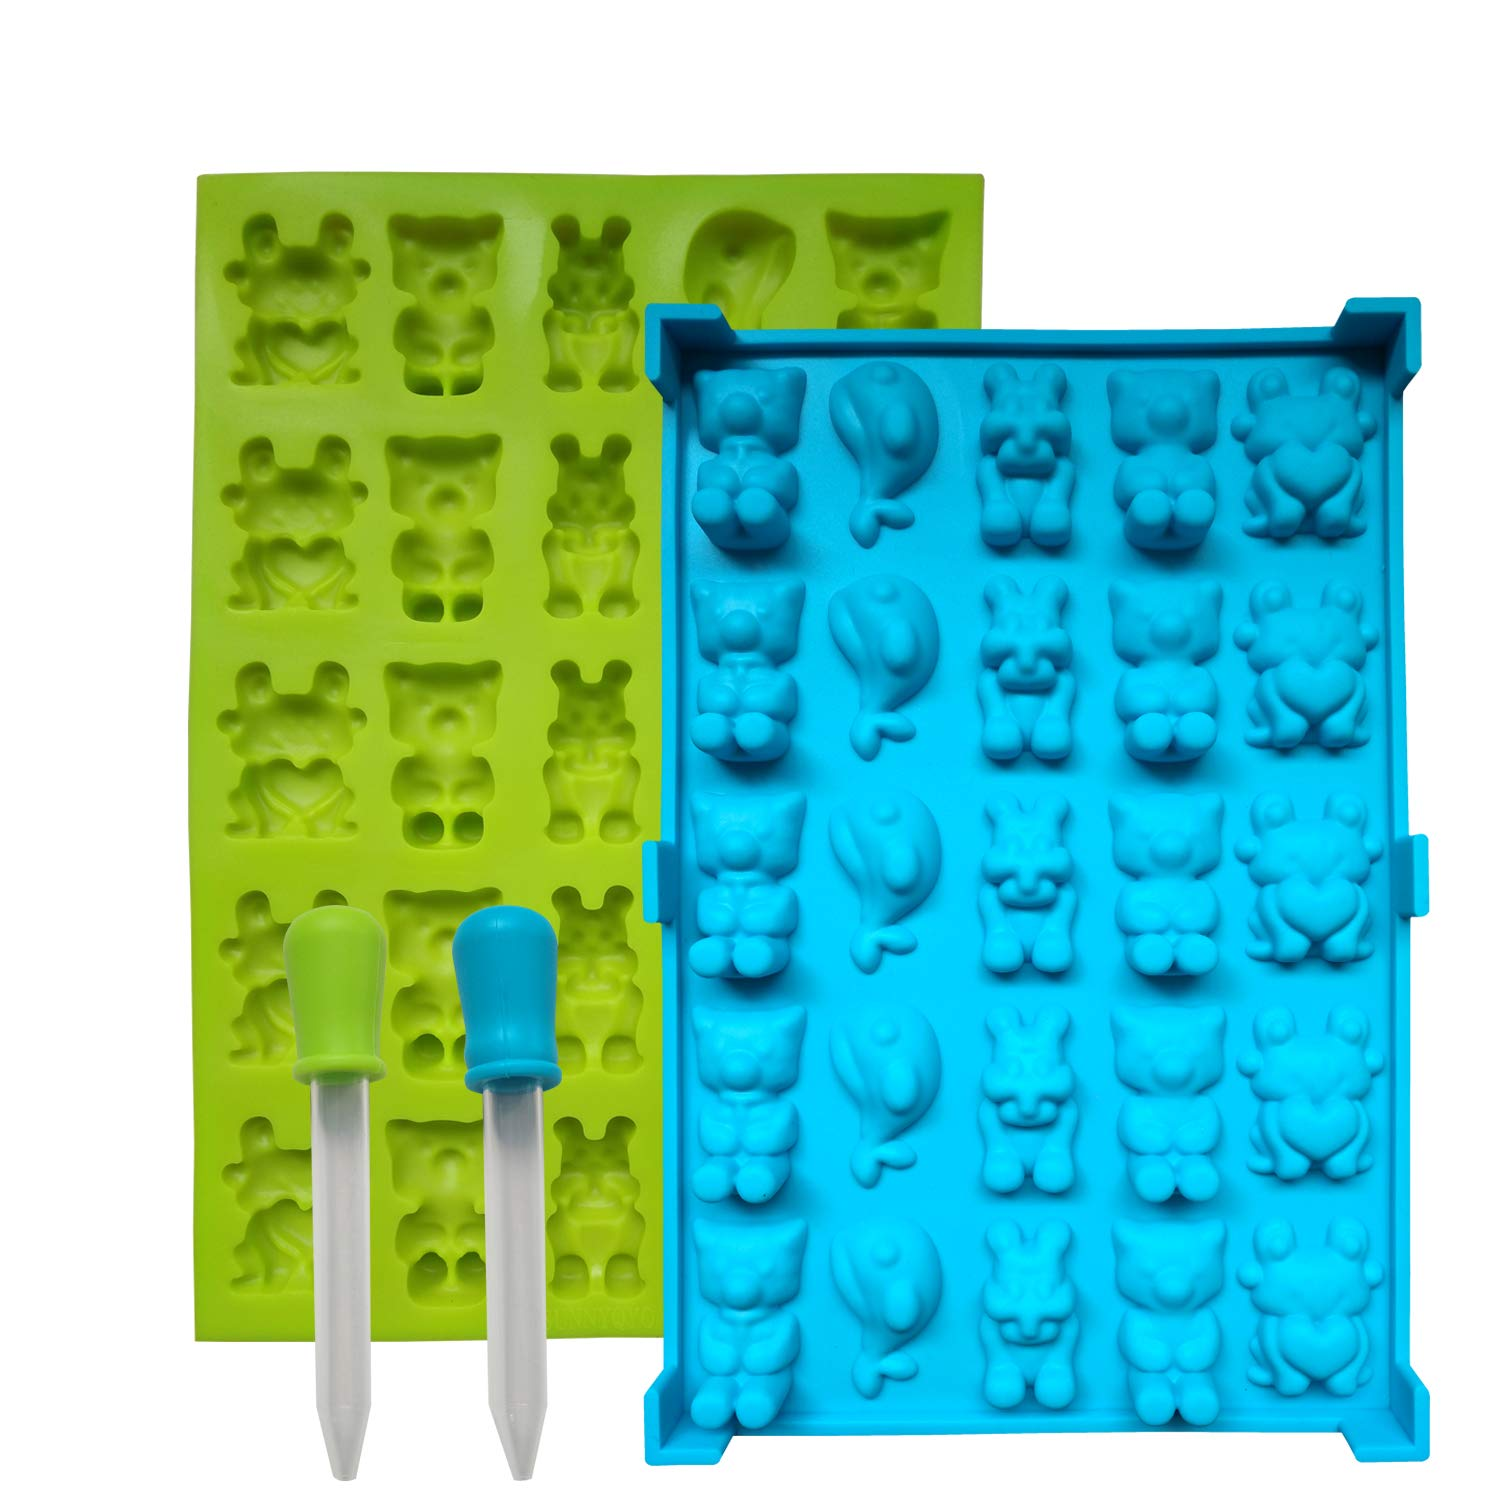 2 Pack Nonstick Chocolate Gummy Bear Mold Food Grade BPA Free Silicone Candy Mold-5 in 1 Animals Including Tiger, Cat, Frog,fish & Bear Mold with 2 Bonus Droppers